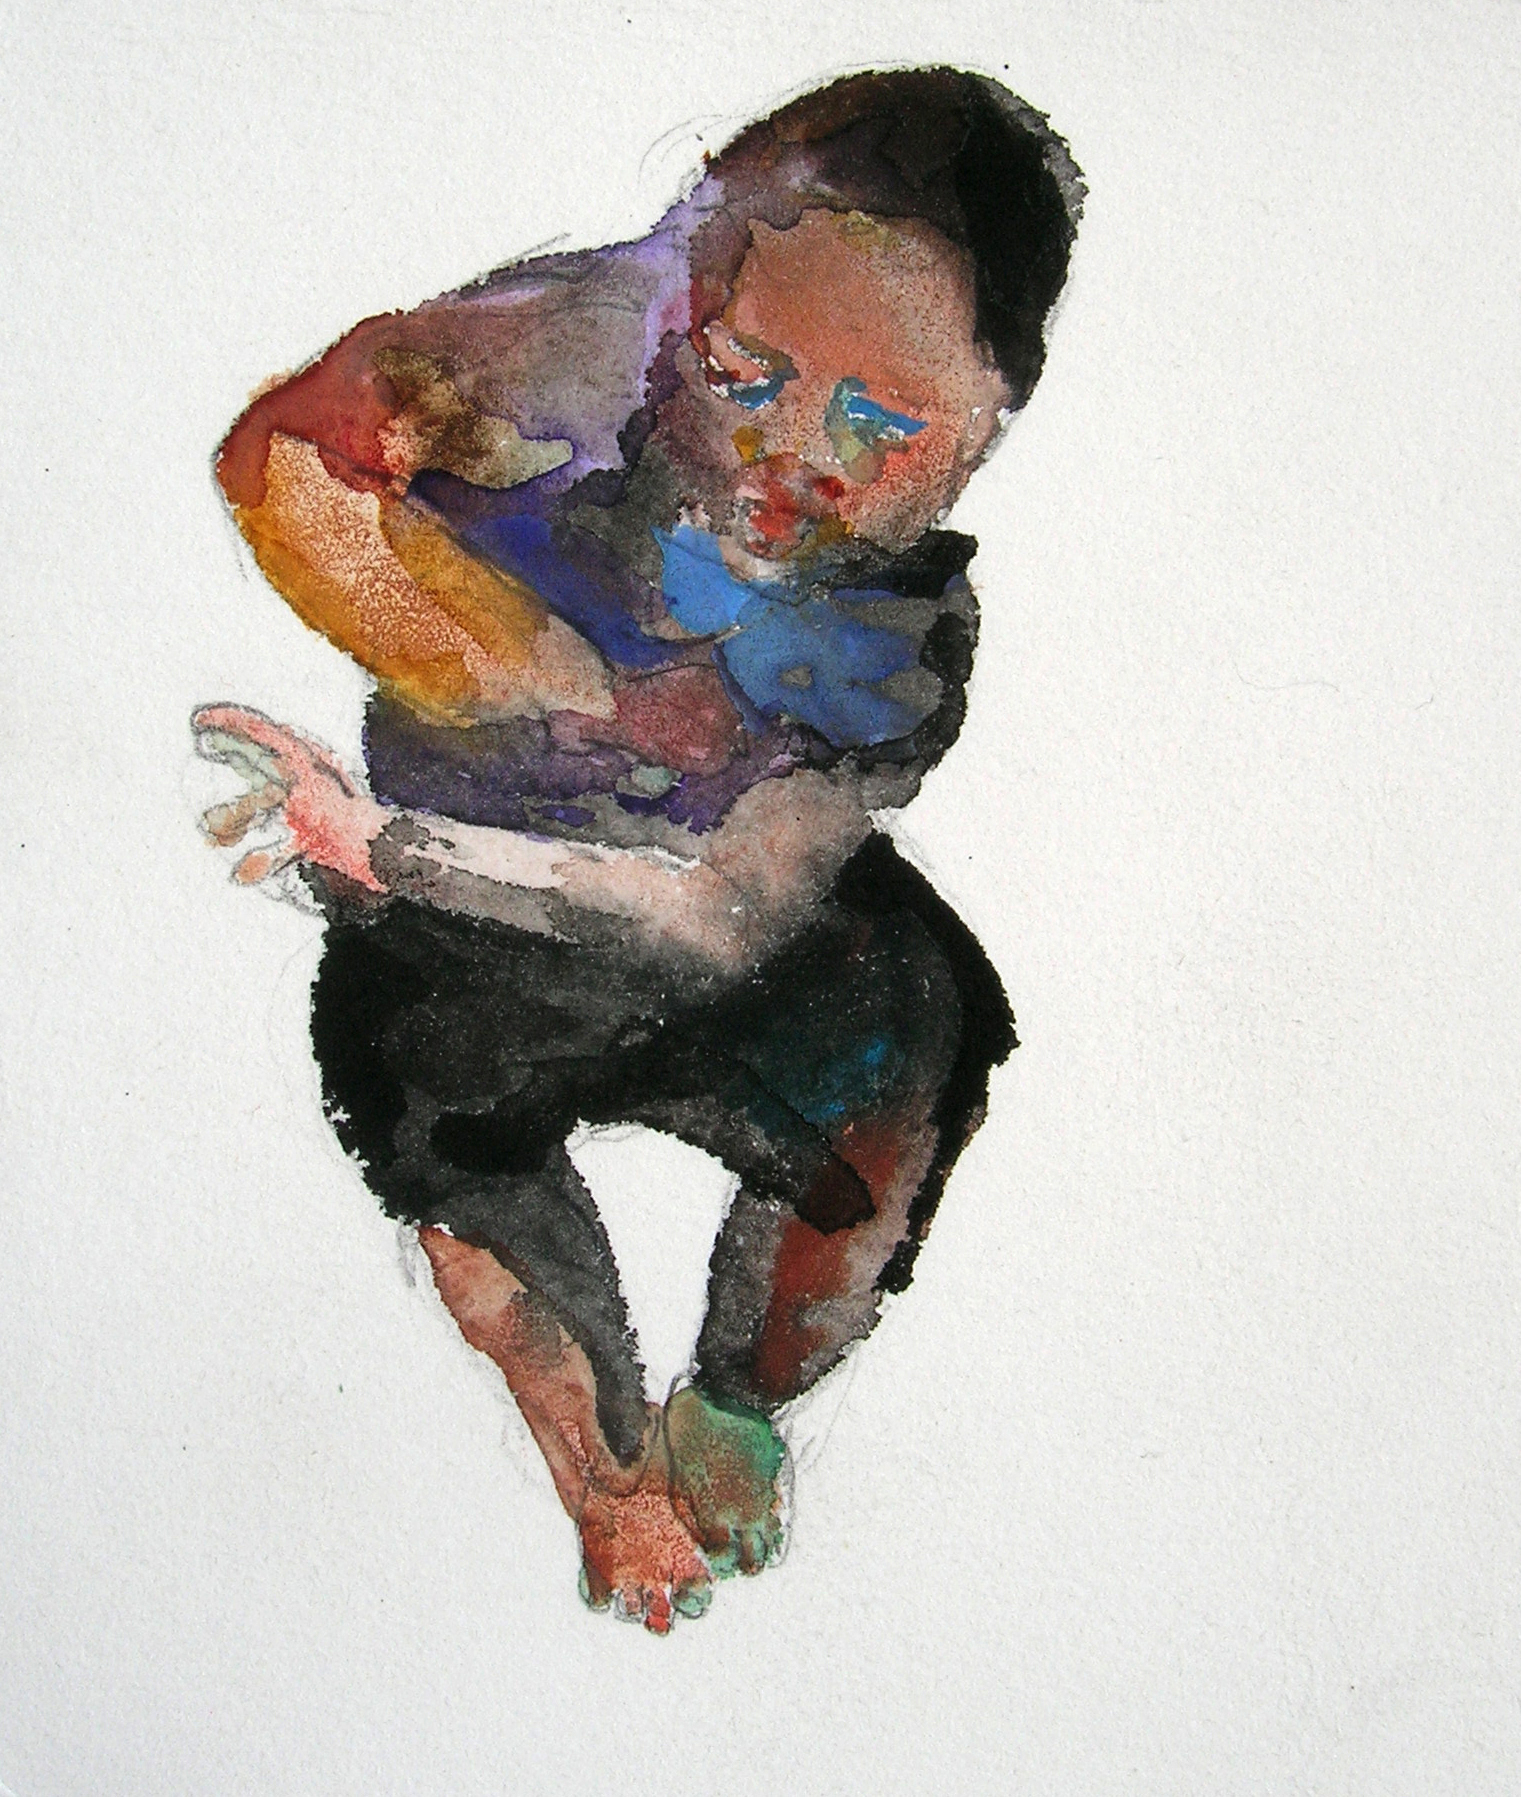 Jumping, 2007, Graphite and watercolor on paper, 4 X 3 in.